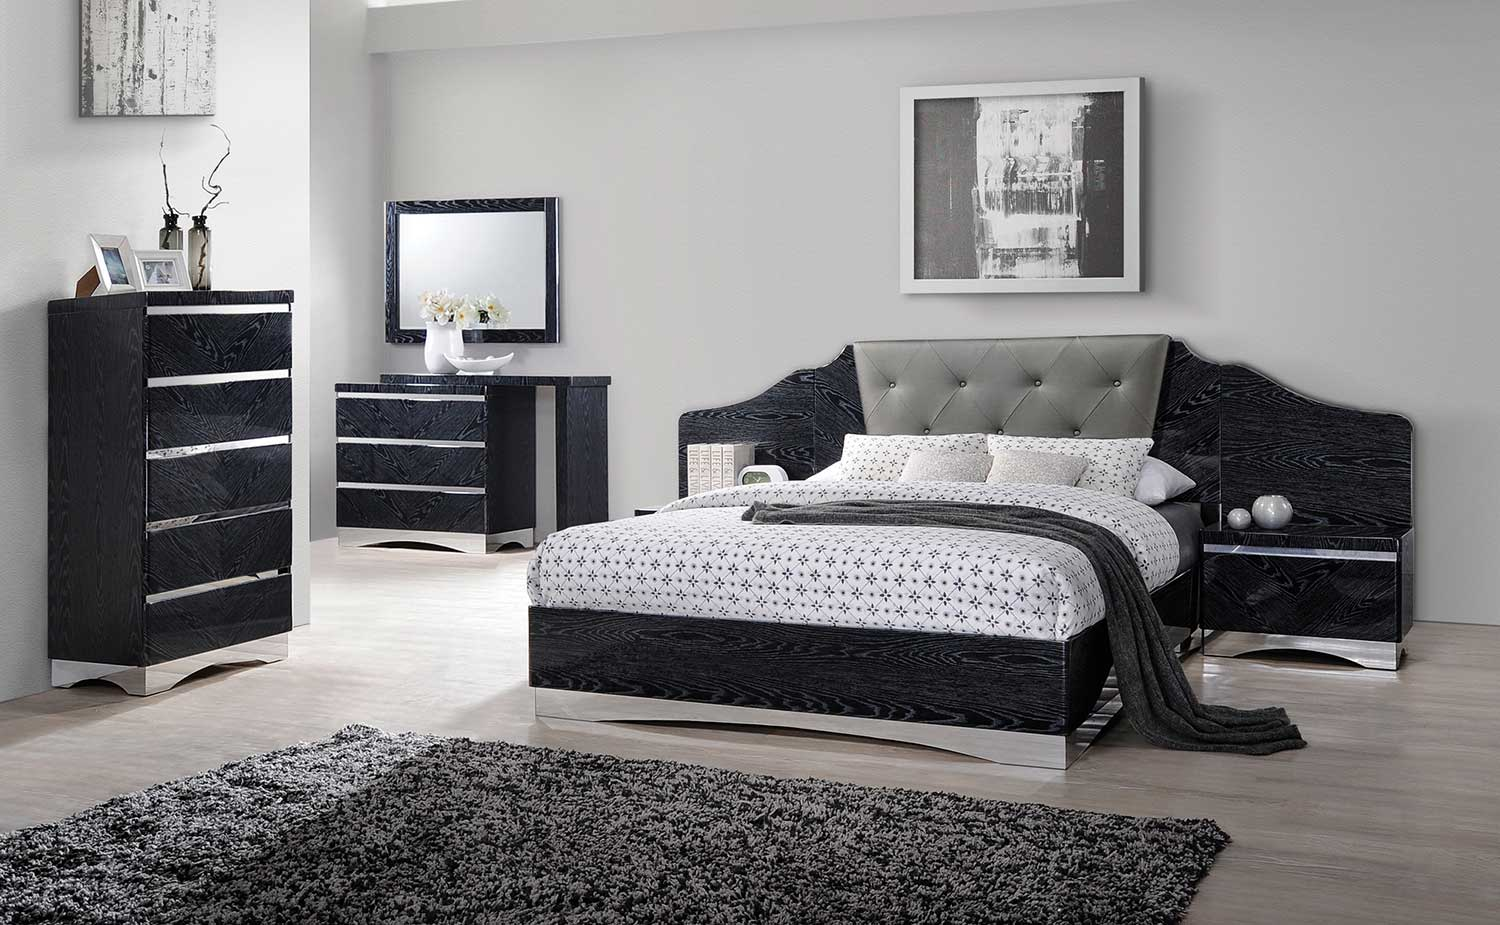 coaster alessandro upholstered bedroom set glossy black 205021 bedroom set at. Black Bedroom Furniture Sets. Home Design Ideas